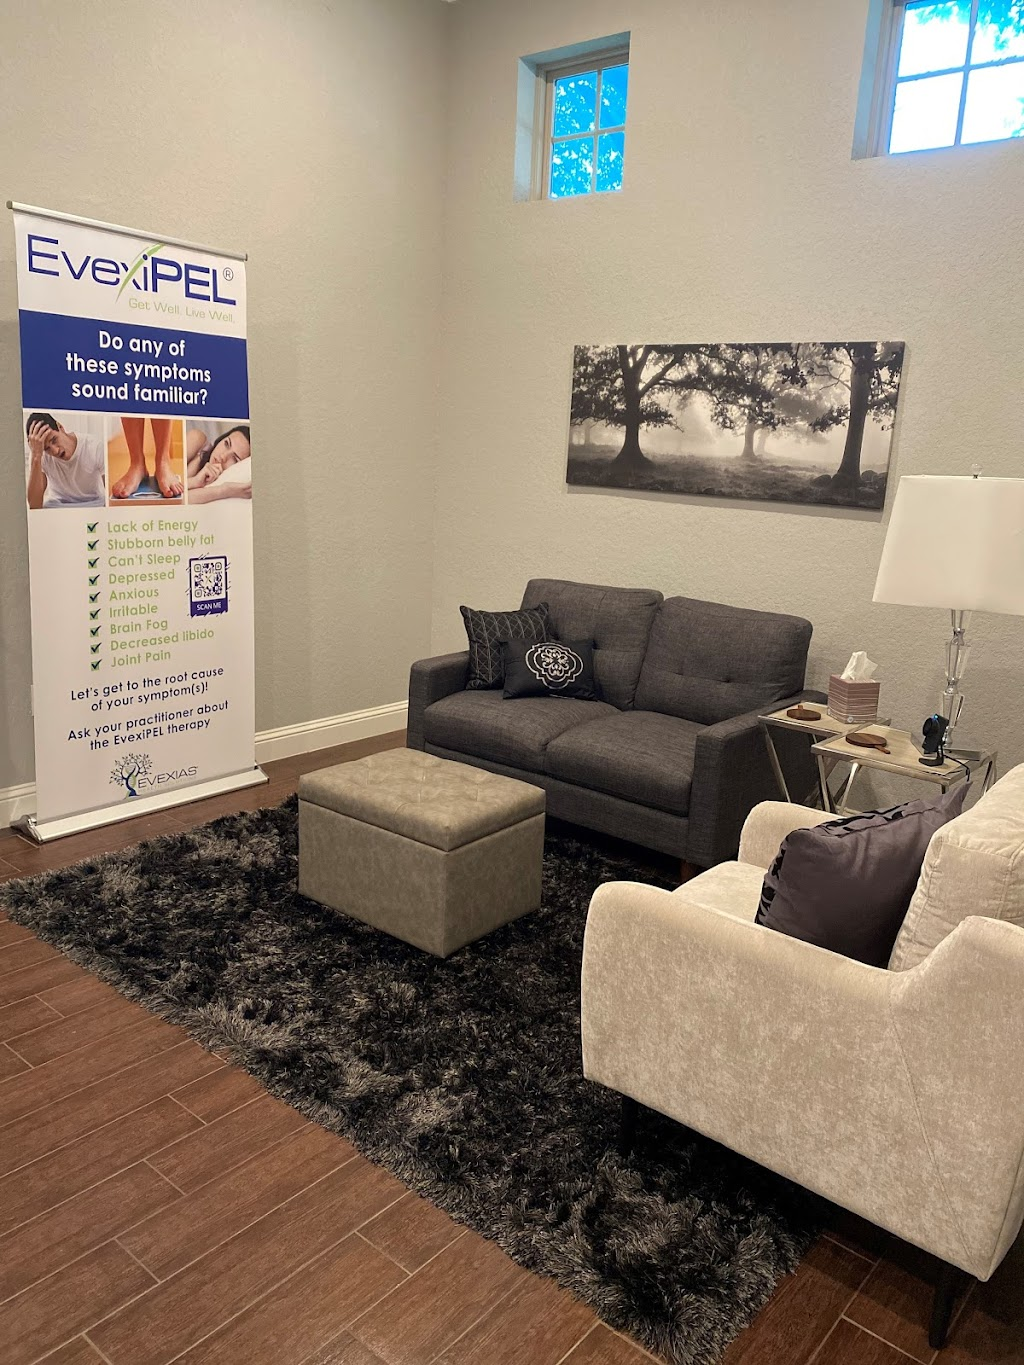 Elan Med Spa & Clinic - spa  | Photo 5 of 10 | Address: 1795 N Hwy 77 Suite 105, Waxahachie, TX 75165, USA | Phone: (972) 525-0800